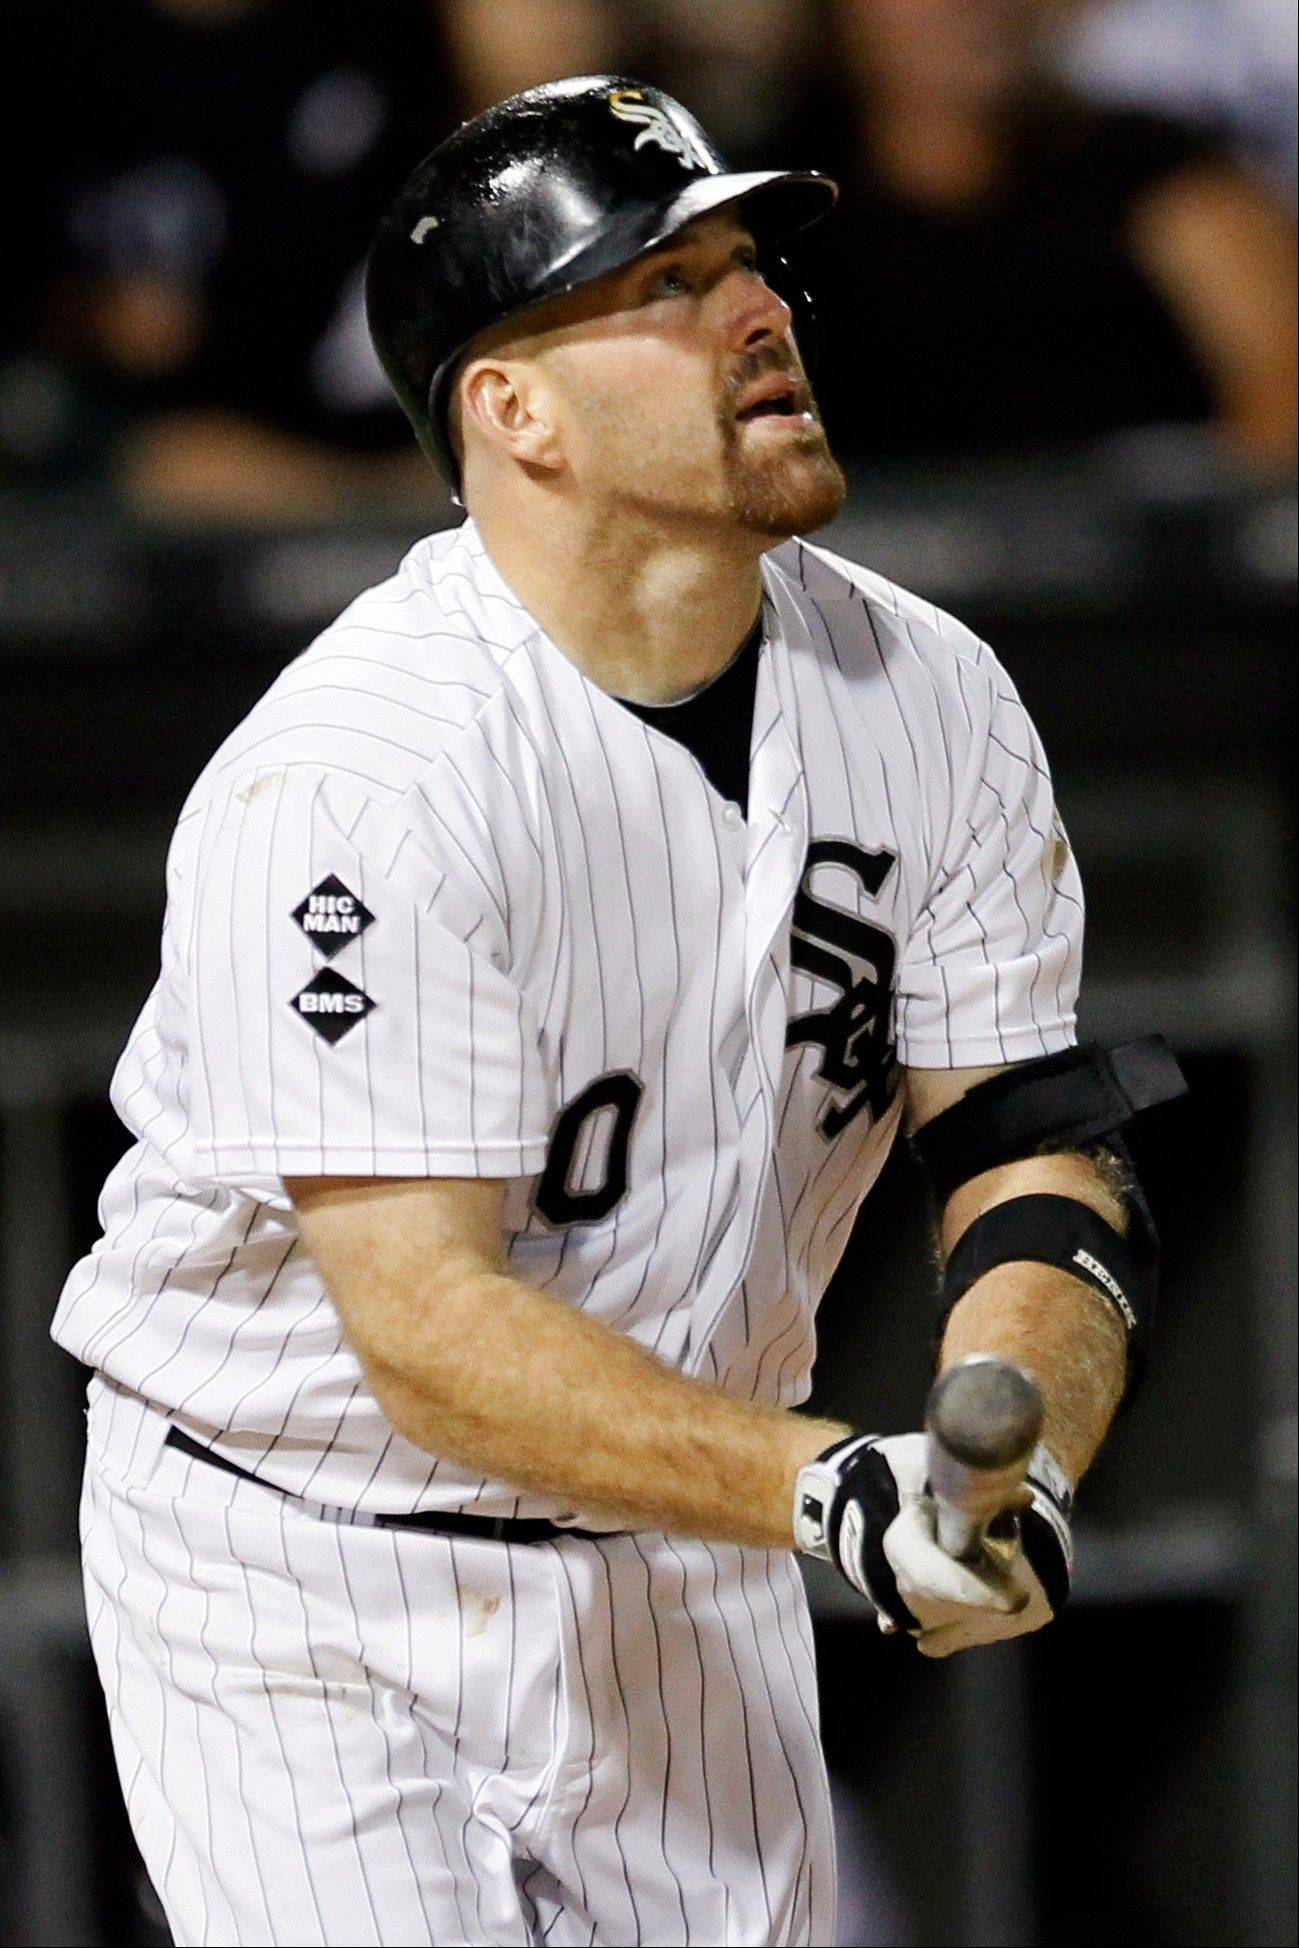 Former White Sox third baseman Kevin Youkilis and the New York Yankees have reached agreement on a $12 million, one-year deal.